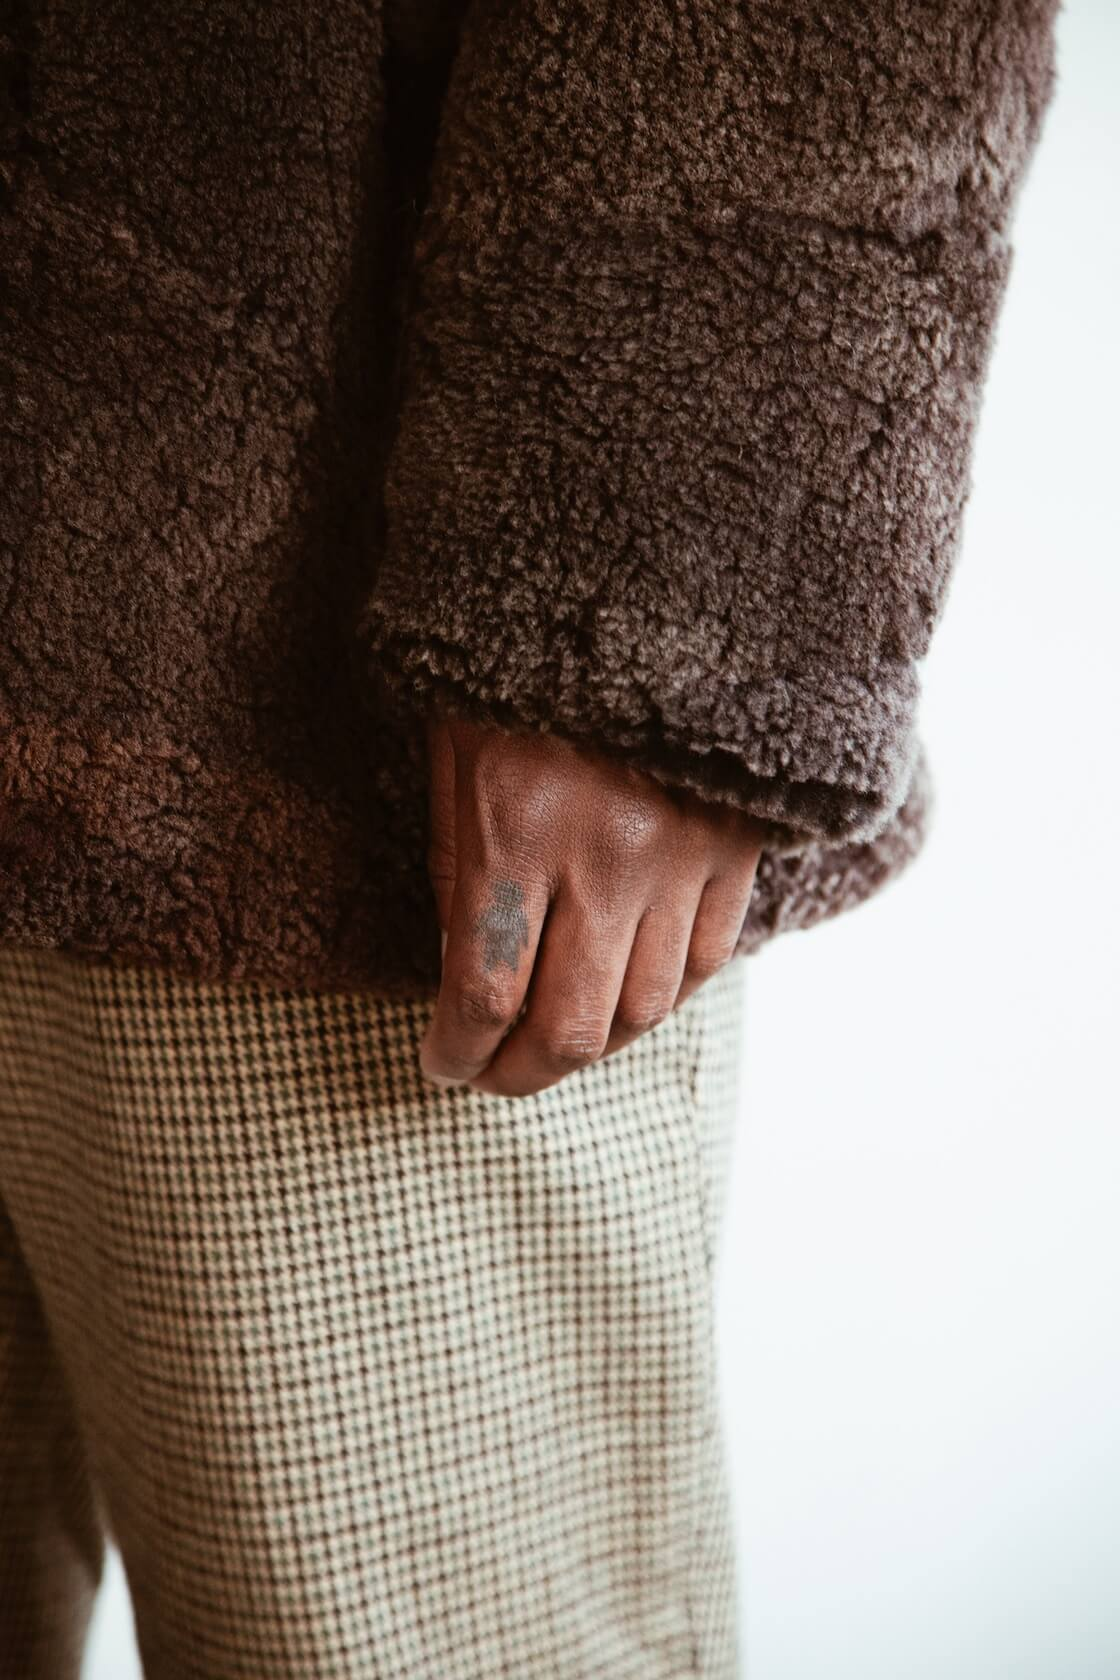 Patchwork Mouton Coat from Sugar Cane, Polo Neck Sweater from Mountain Research, and Andover Pant from Engineered Garments